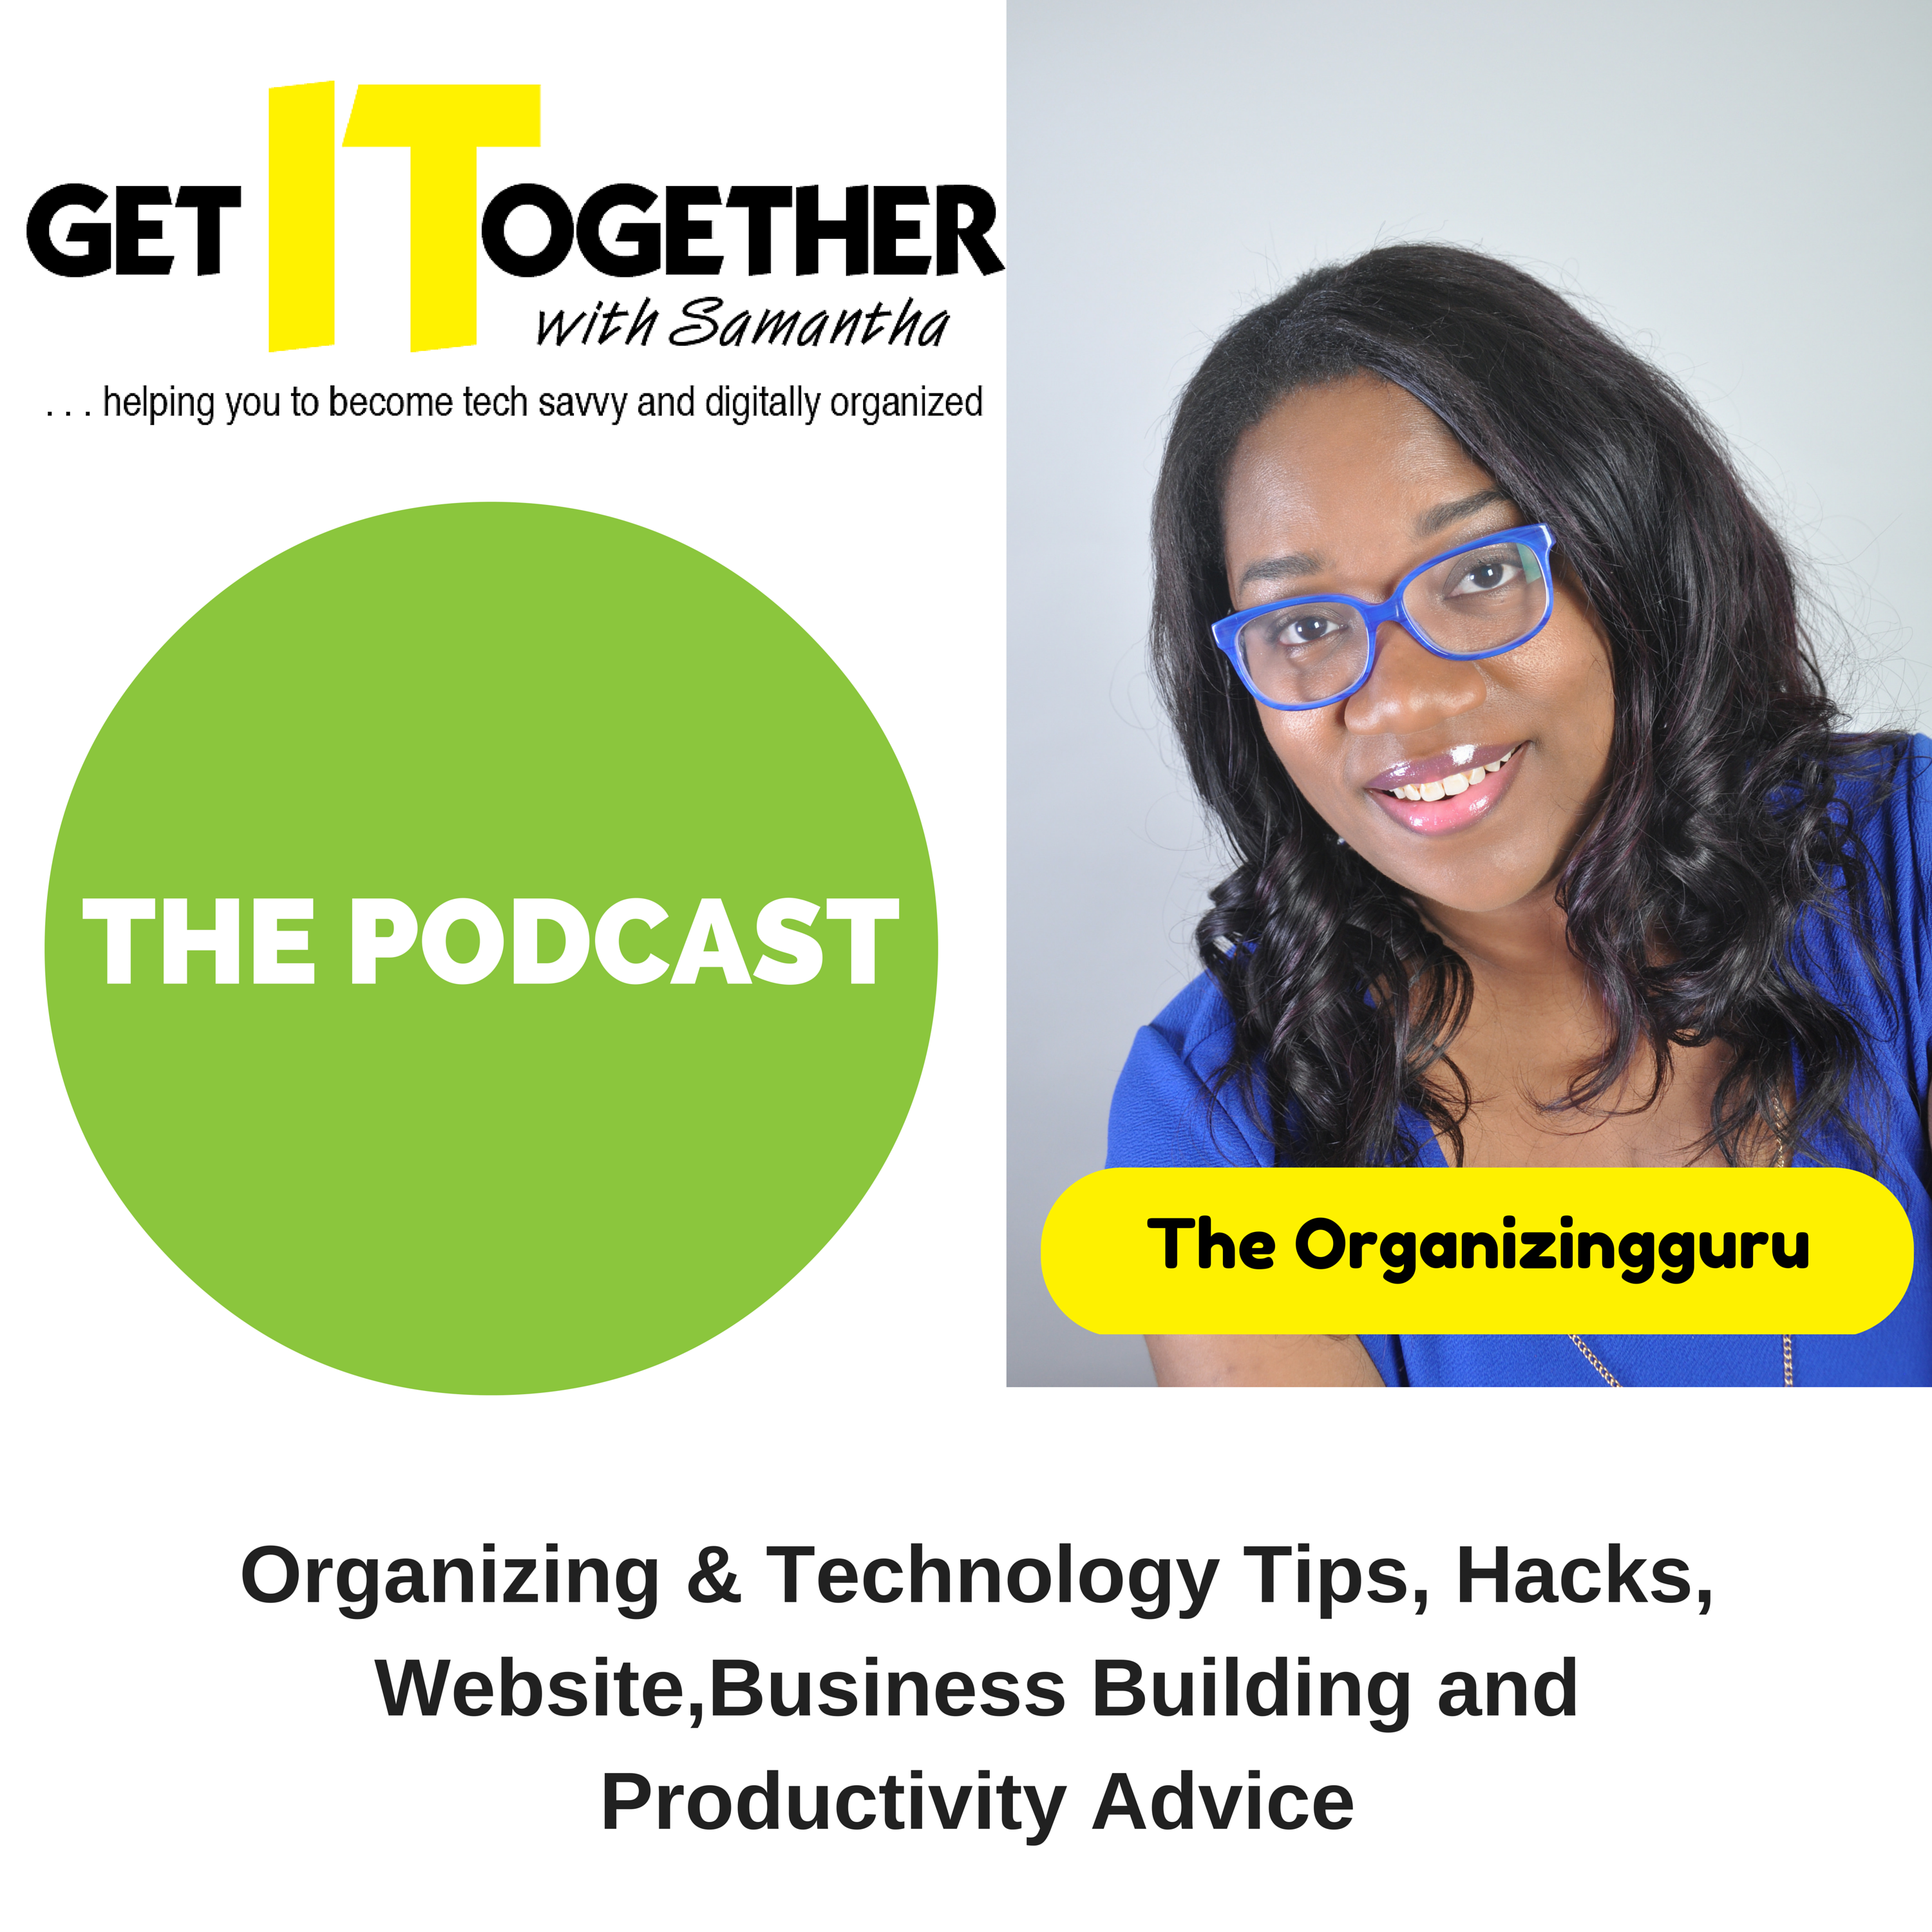 Get It Together! with Samantha Podcast